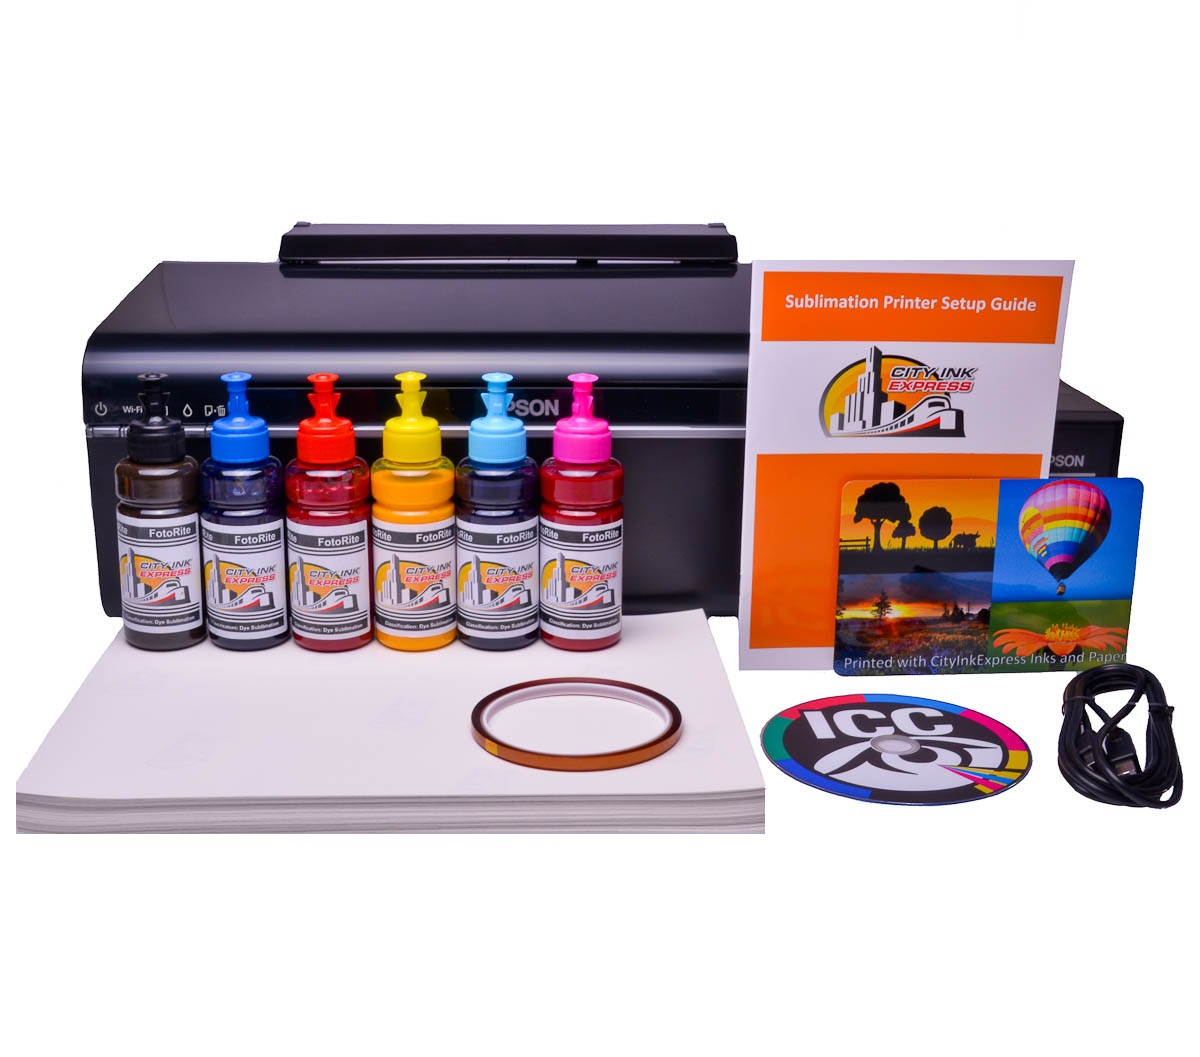 Sublimation printer package for Epson L805 printer #1